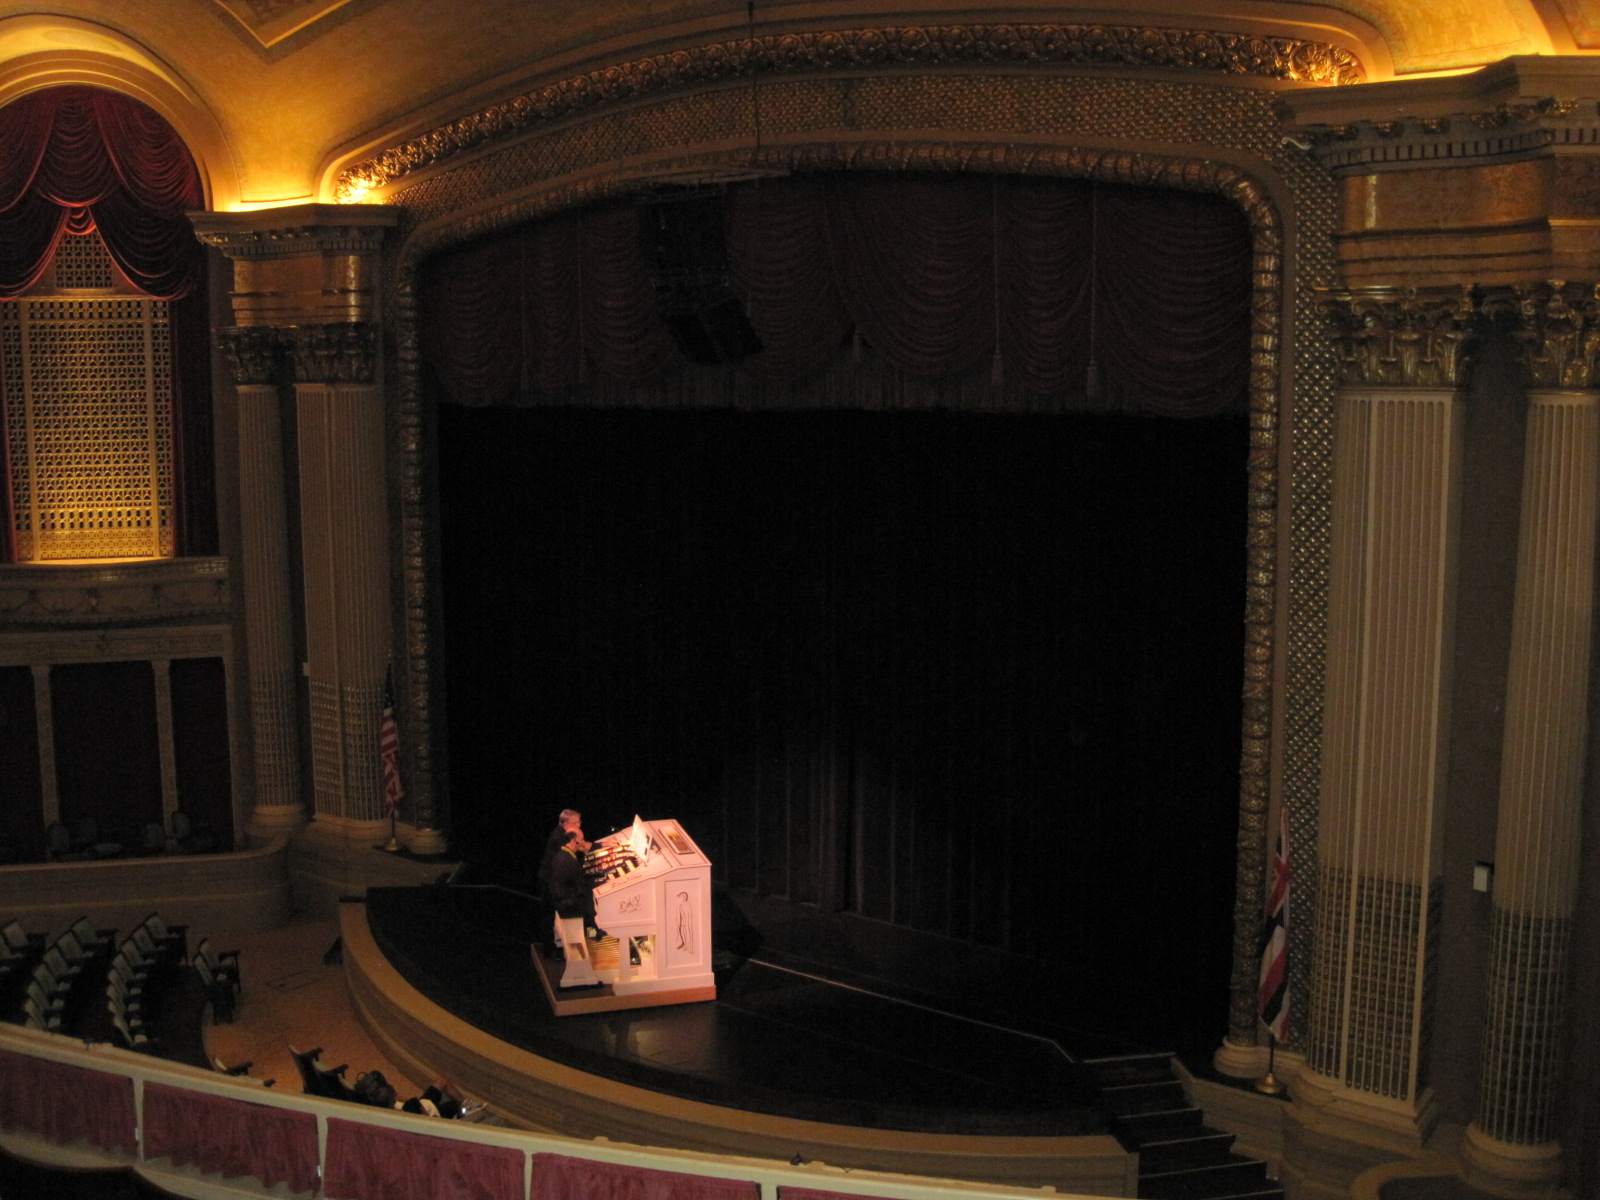 File:Hawaii-Theatre-proscenium-stage.JPG - Wikimedia Commons